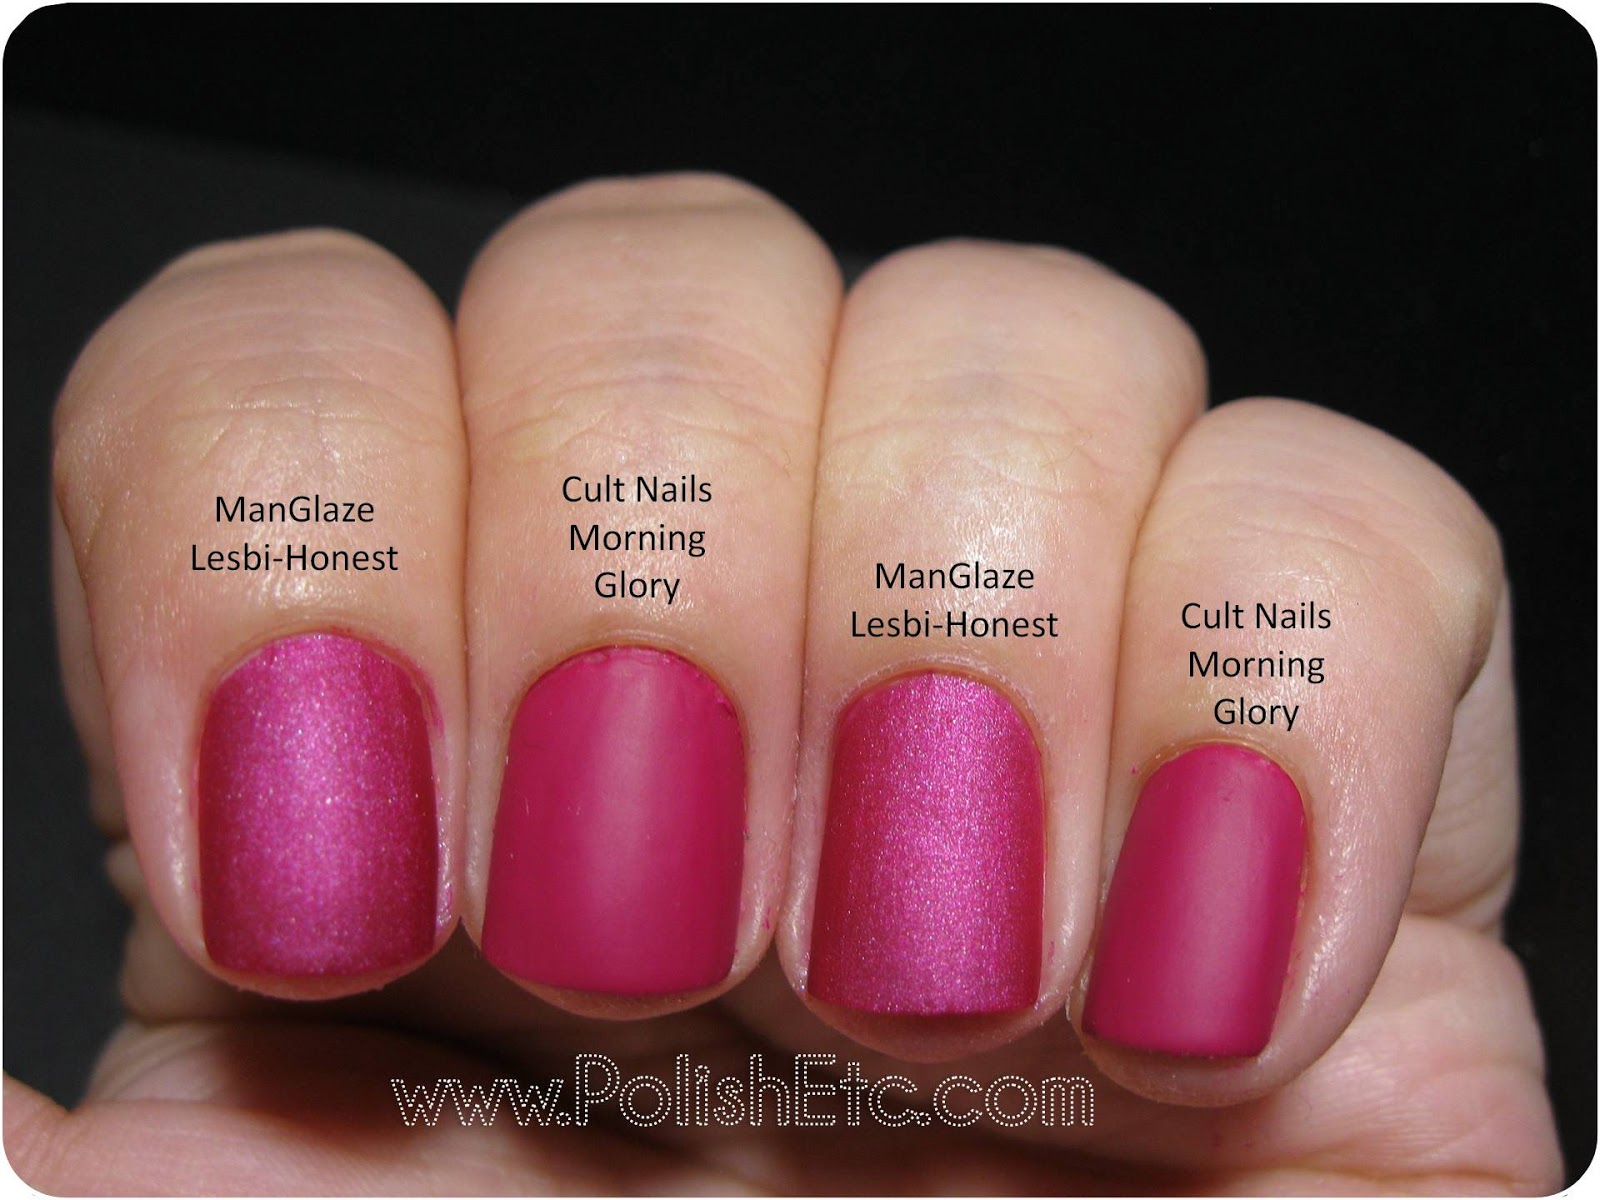 Cult Nails Morning Glory and a Comparison - Polish Etc.